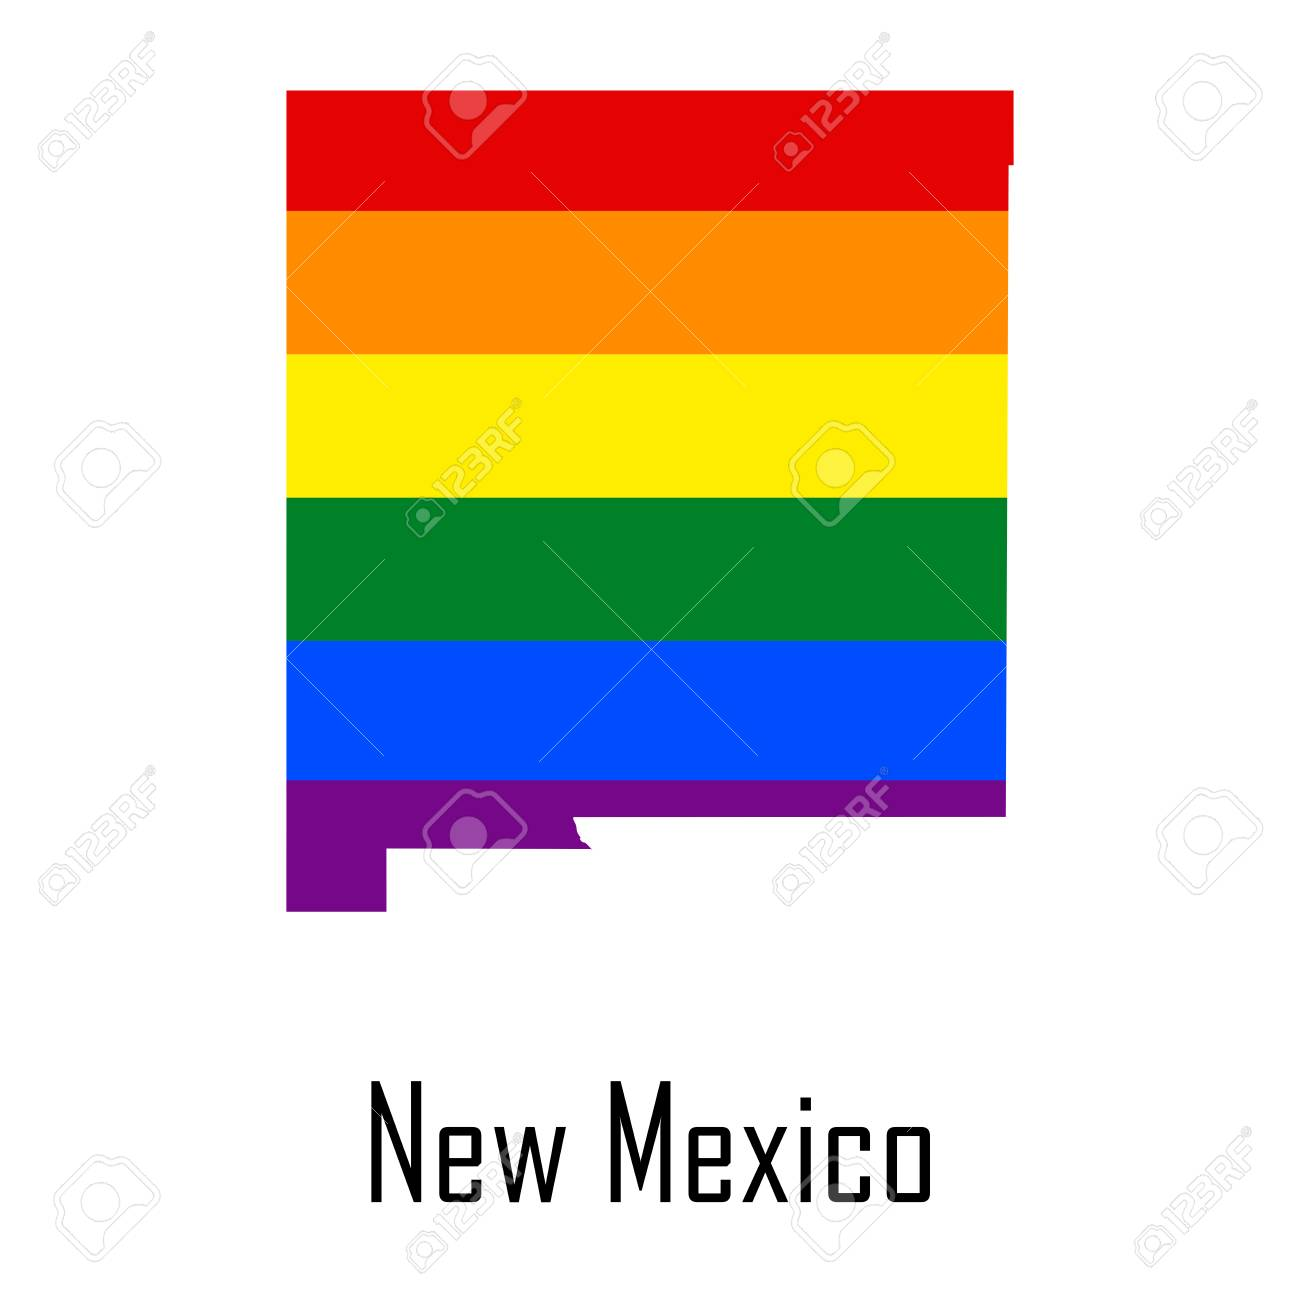 New mexico gays and lesbians